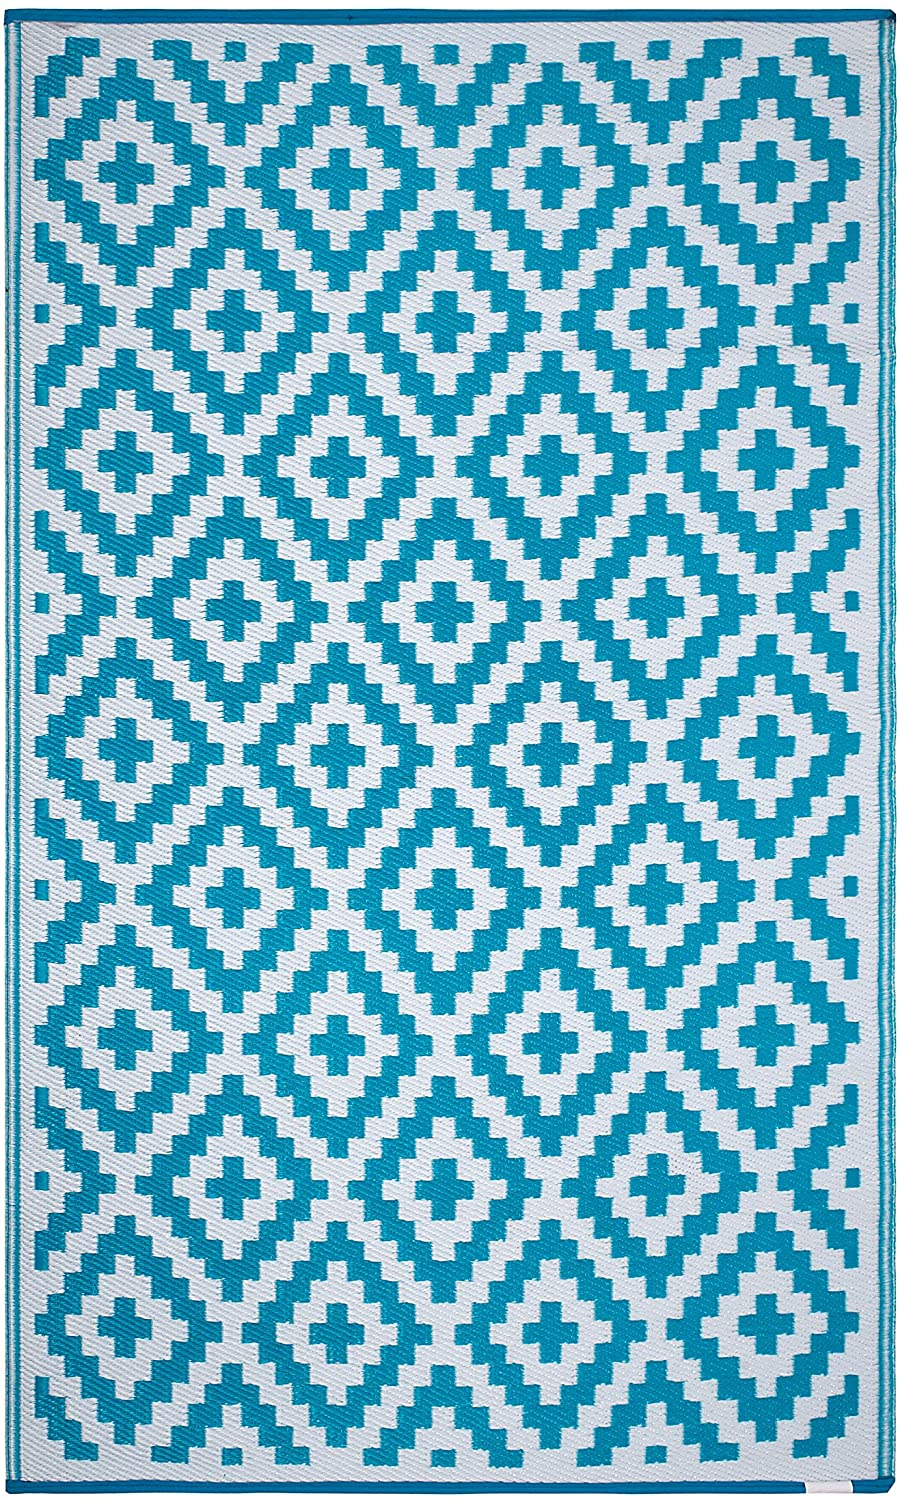 FH Home Cozy Floor Mat for both indoor and outdoor uses